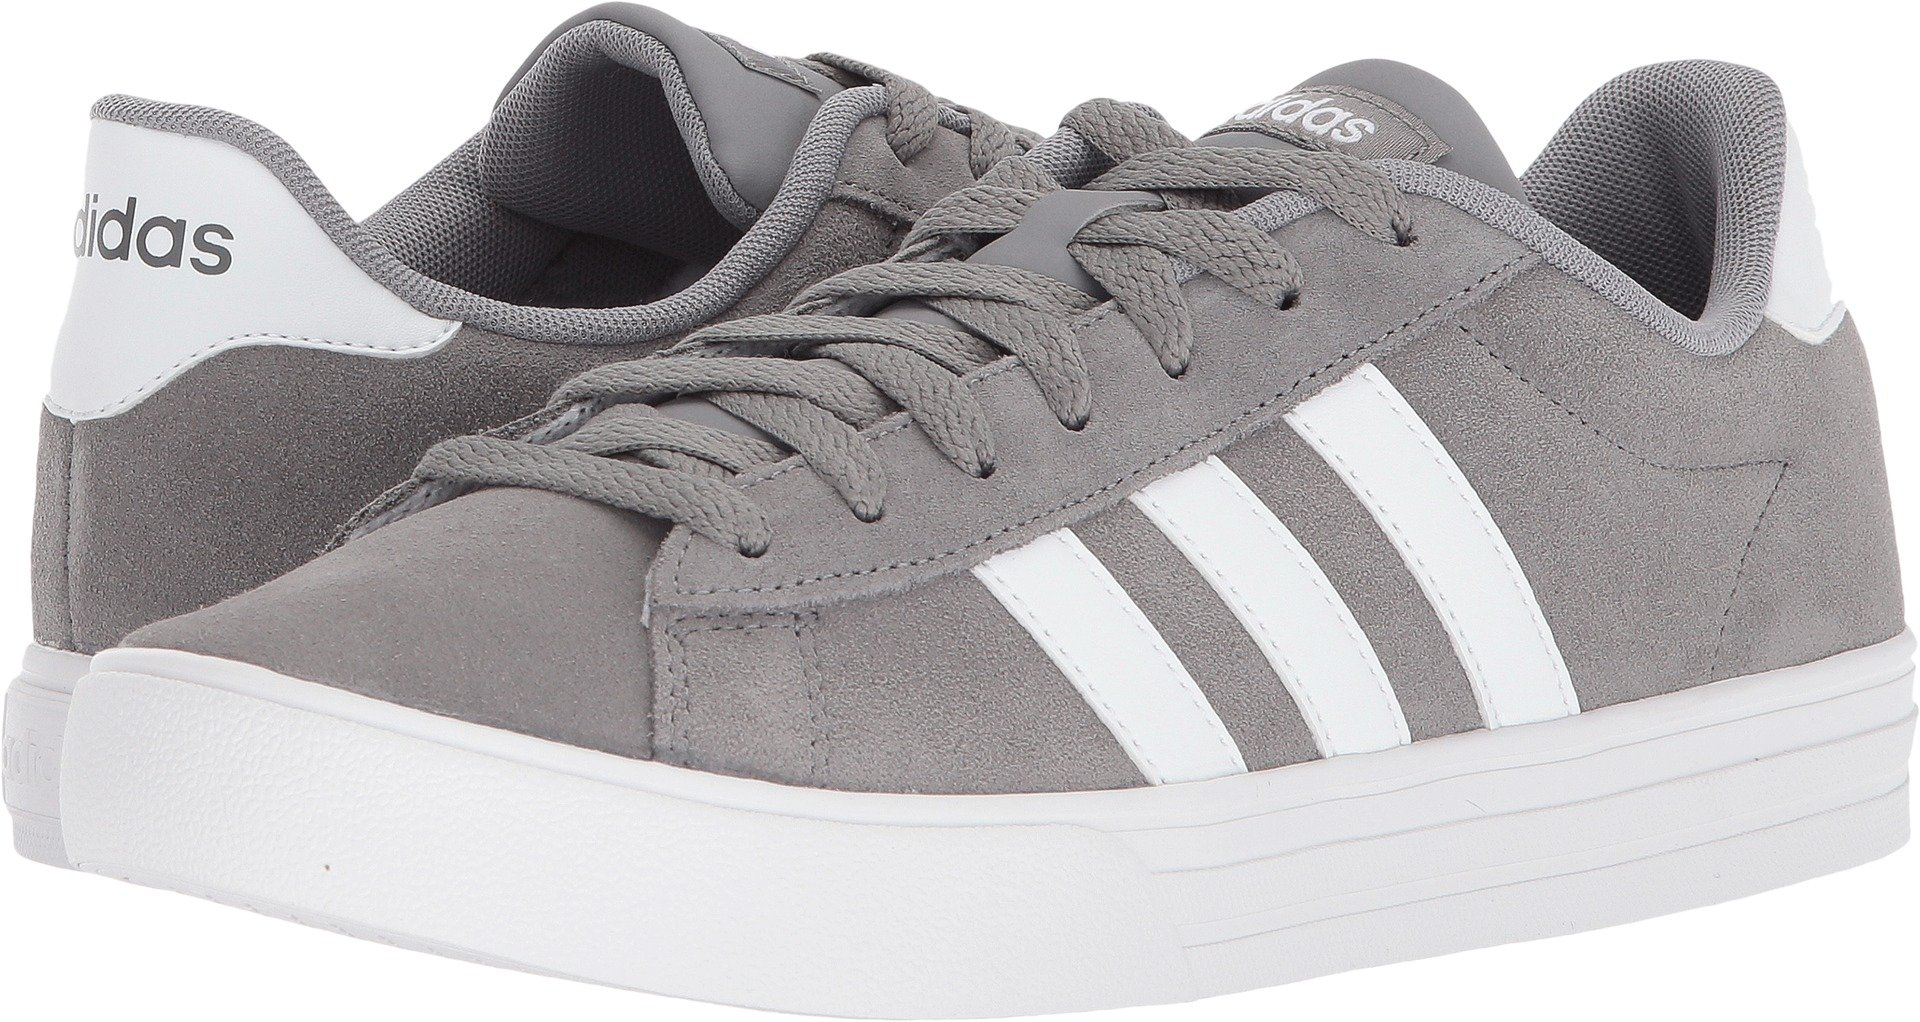 adidas Men's Daily 2.0 Sneaker, Grey Three/White/White, 6.5 M US